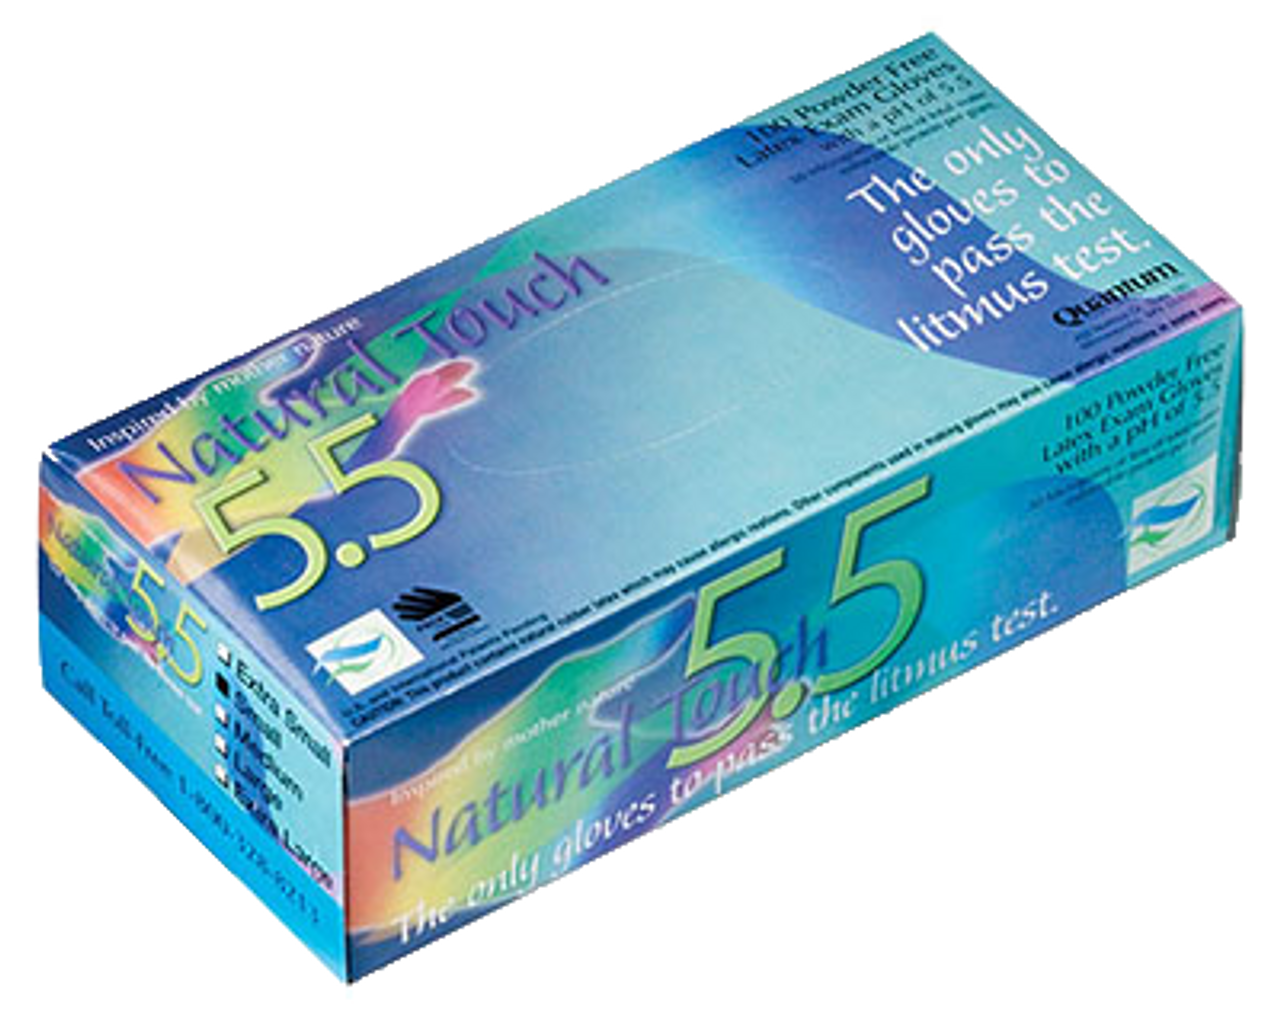 Natural Touch 5.5, PF Latex Exam Gloves, $12.97 per 100 gloves, 10 boxes of 100 per case